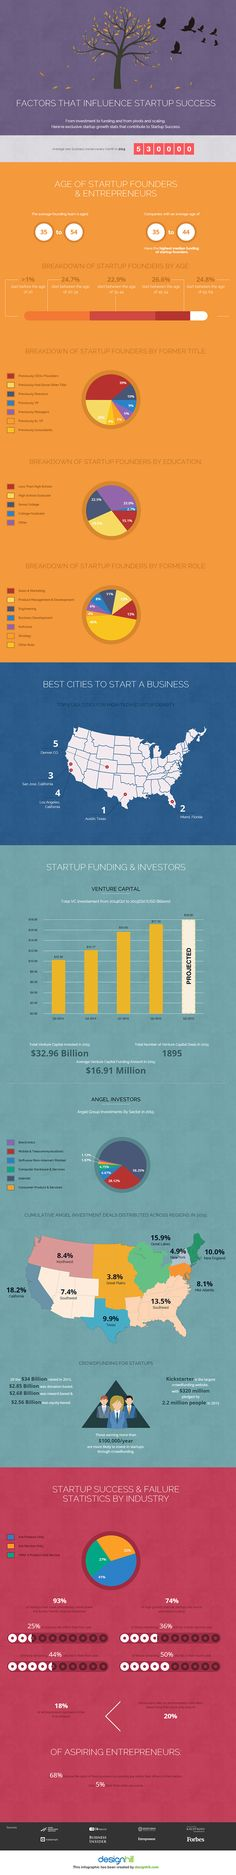 Growth Stats That Contribute to Startup Success [Infographic]